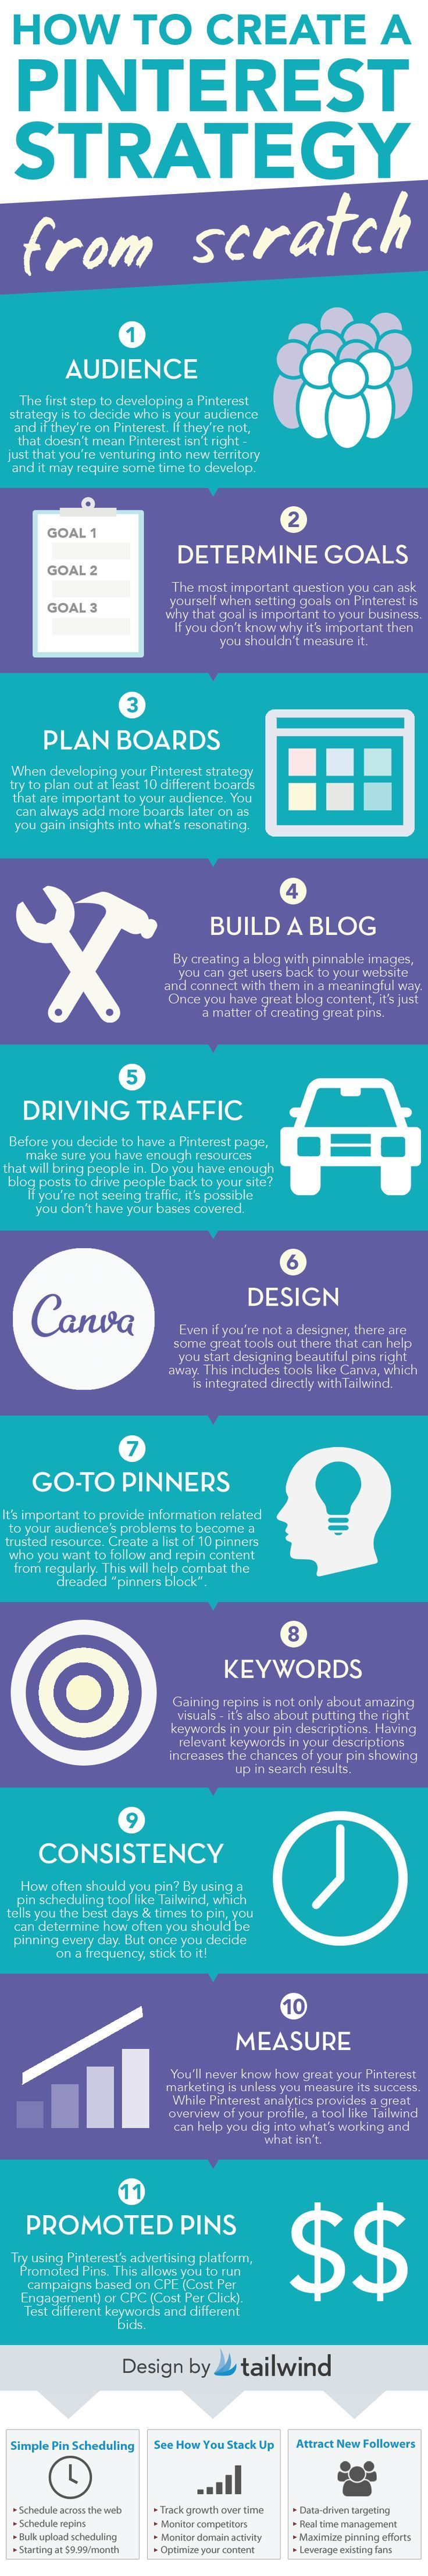 Thank you Tailwind App for mentioning Canva! Some great tips on How To Develop a Pinterest Strategy from Scratch by @Vincent Ng of MCNG Marketing | Pinterest Keynote Speaker and Marketer